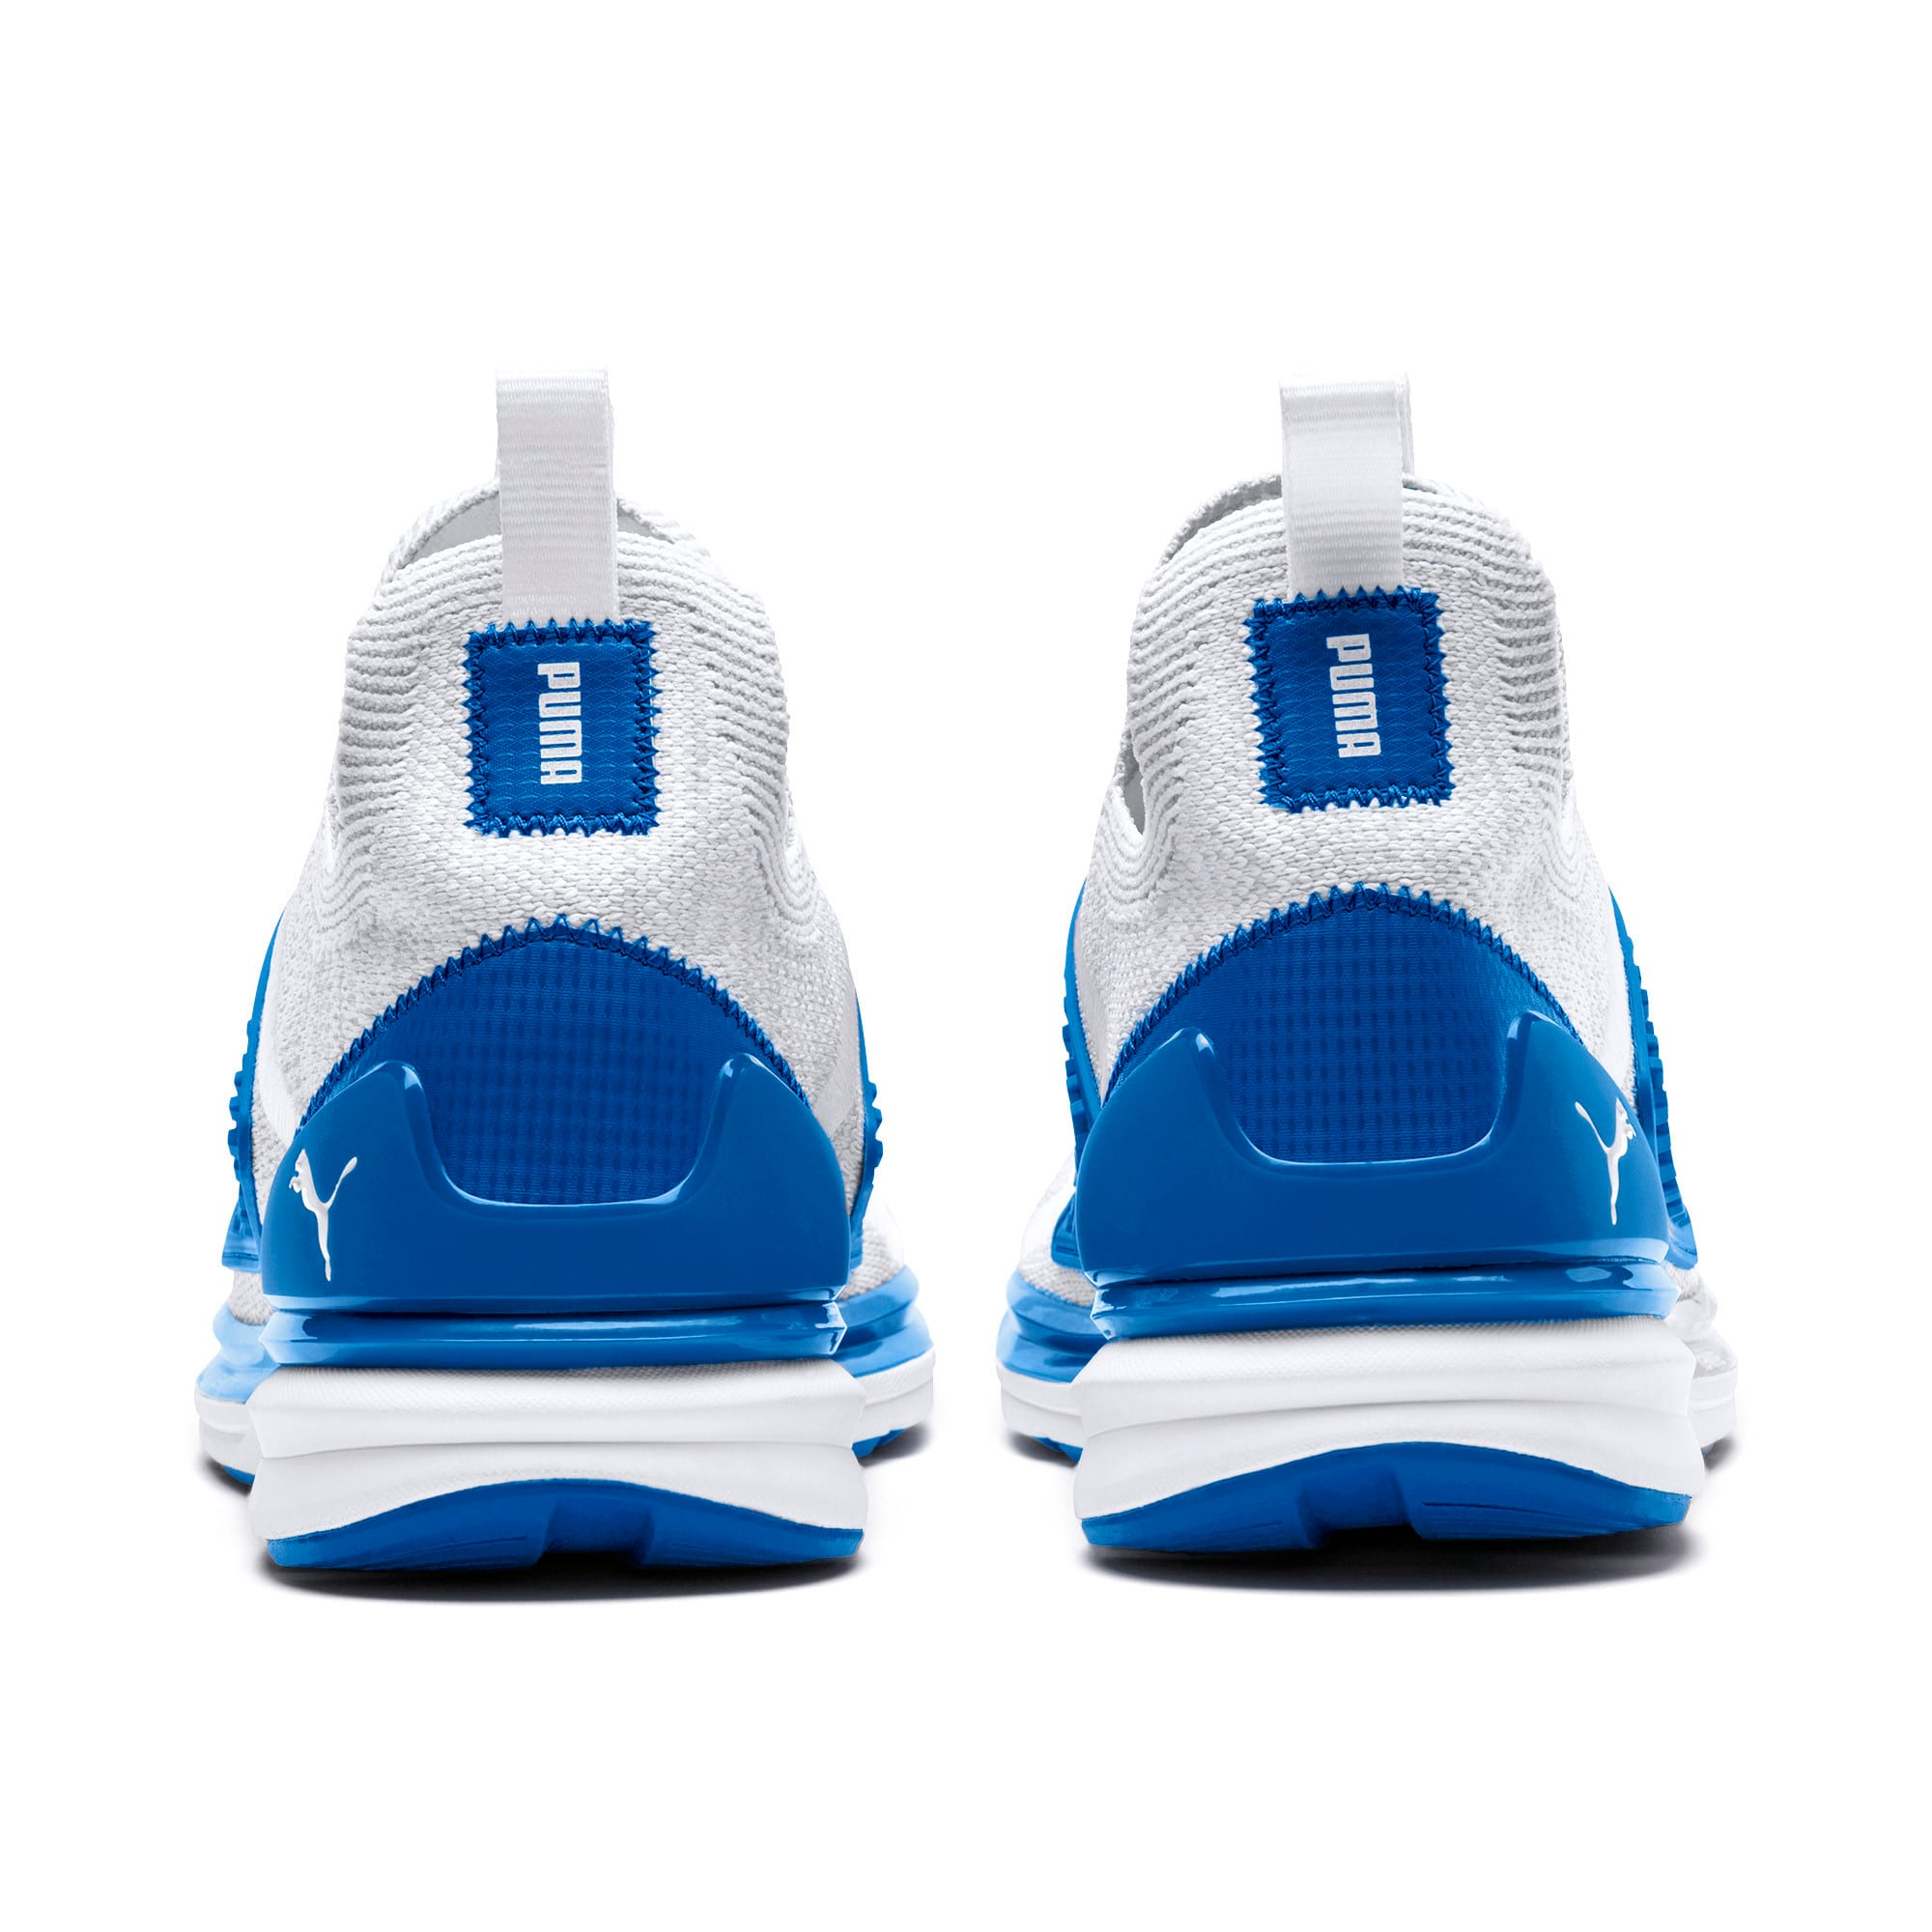 new product 7fa5b e4360 IGNITE Limitless 2 evoKNIT Sneakers